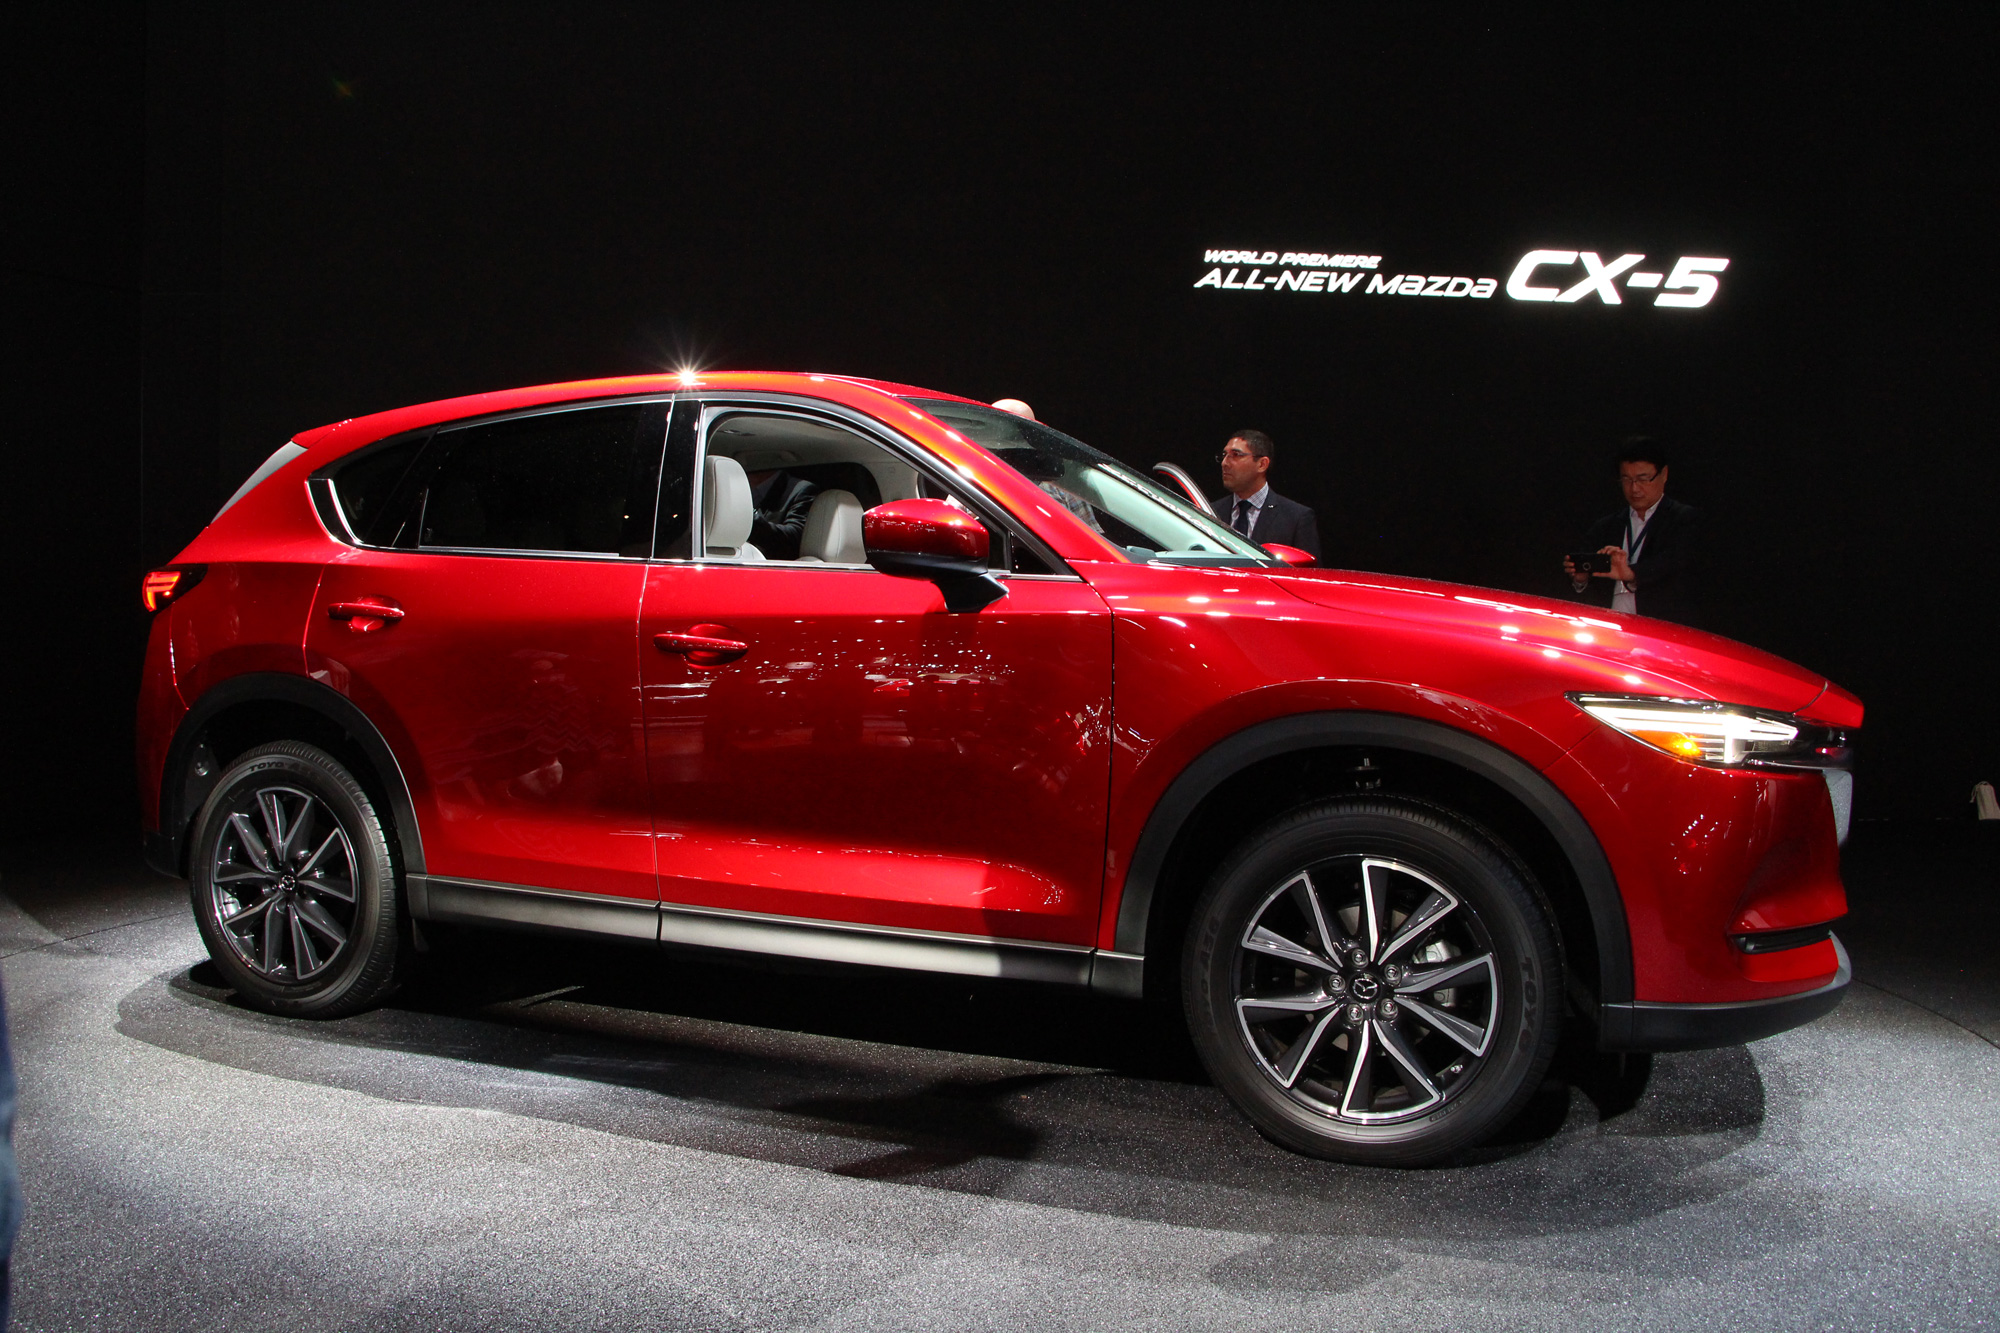 2017 mazda cx 5 revealed with diesel powerplant on the way. Black Bedroom Furniture Sets. Home Design Ideas